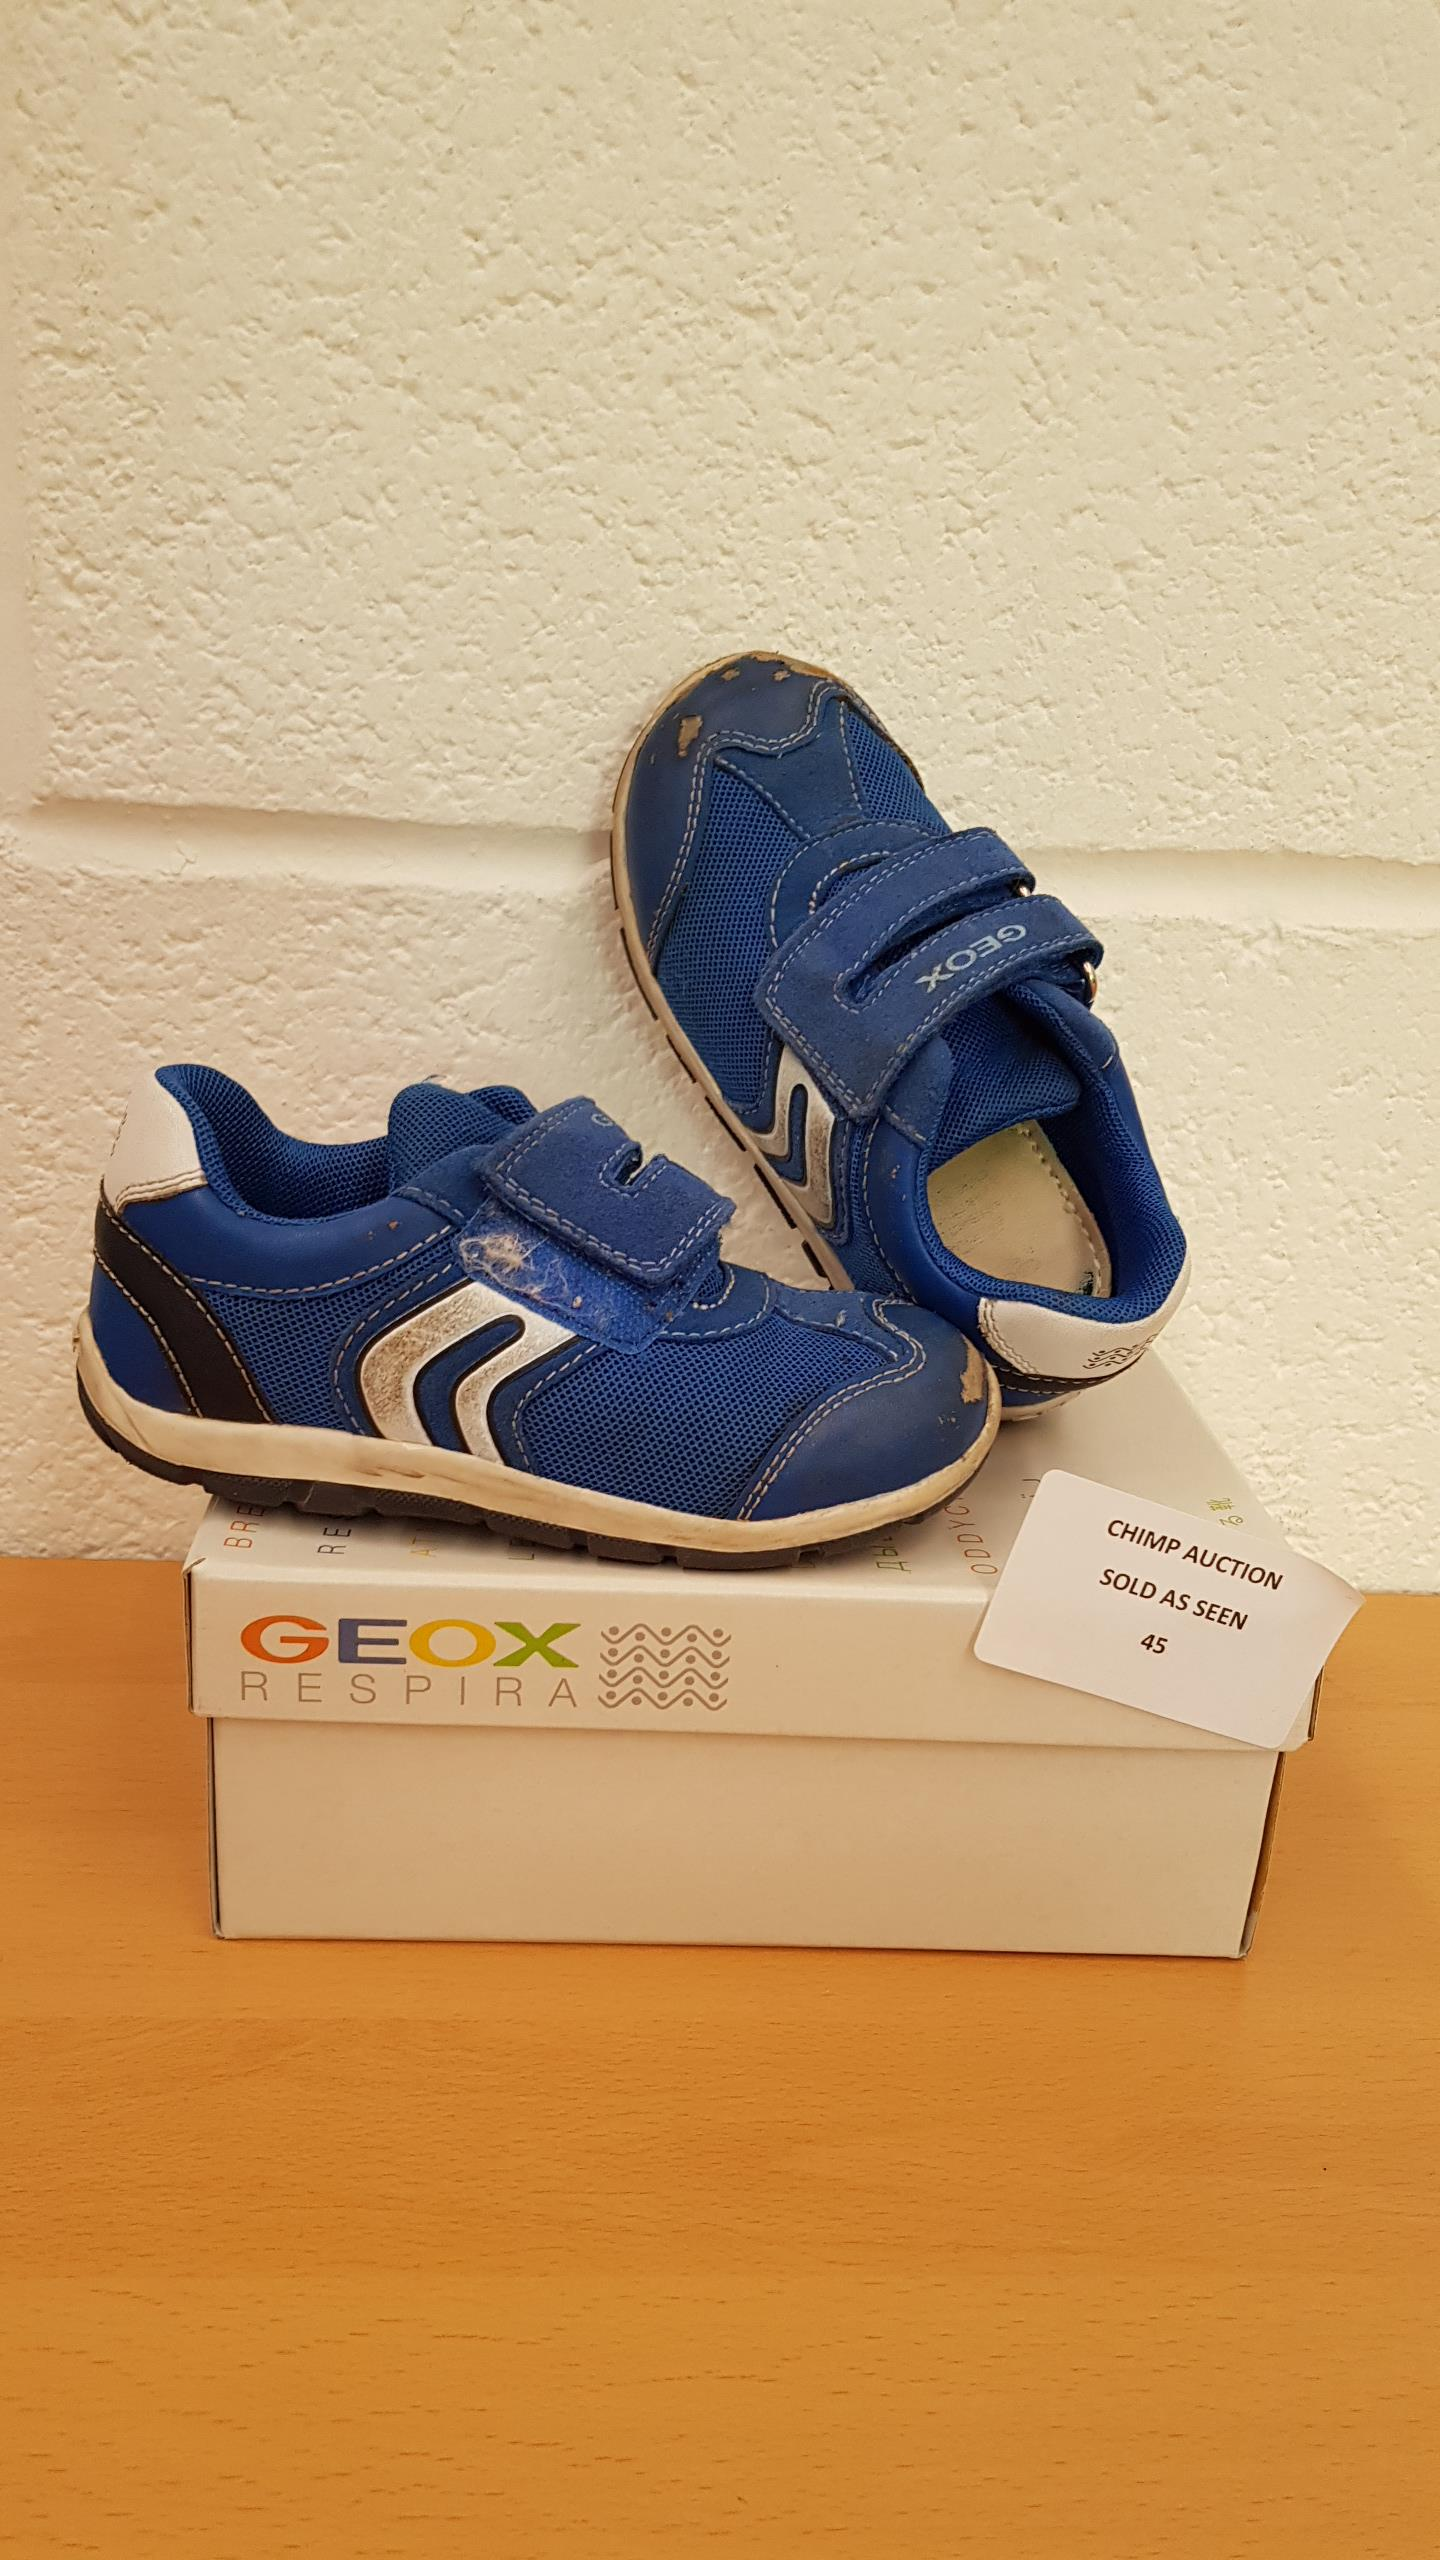 Lot 45 - Geox Respira kids shoes uk size 8.5